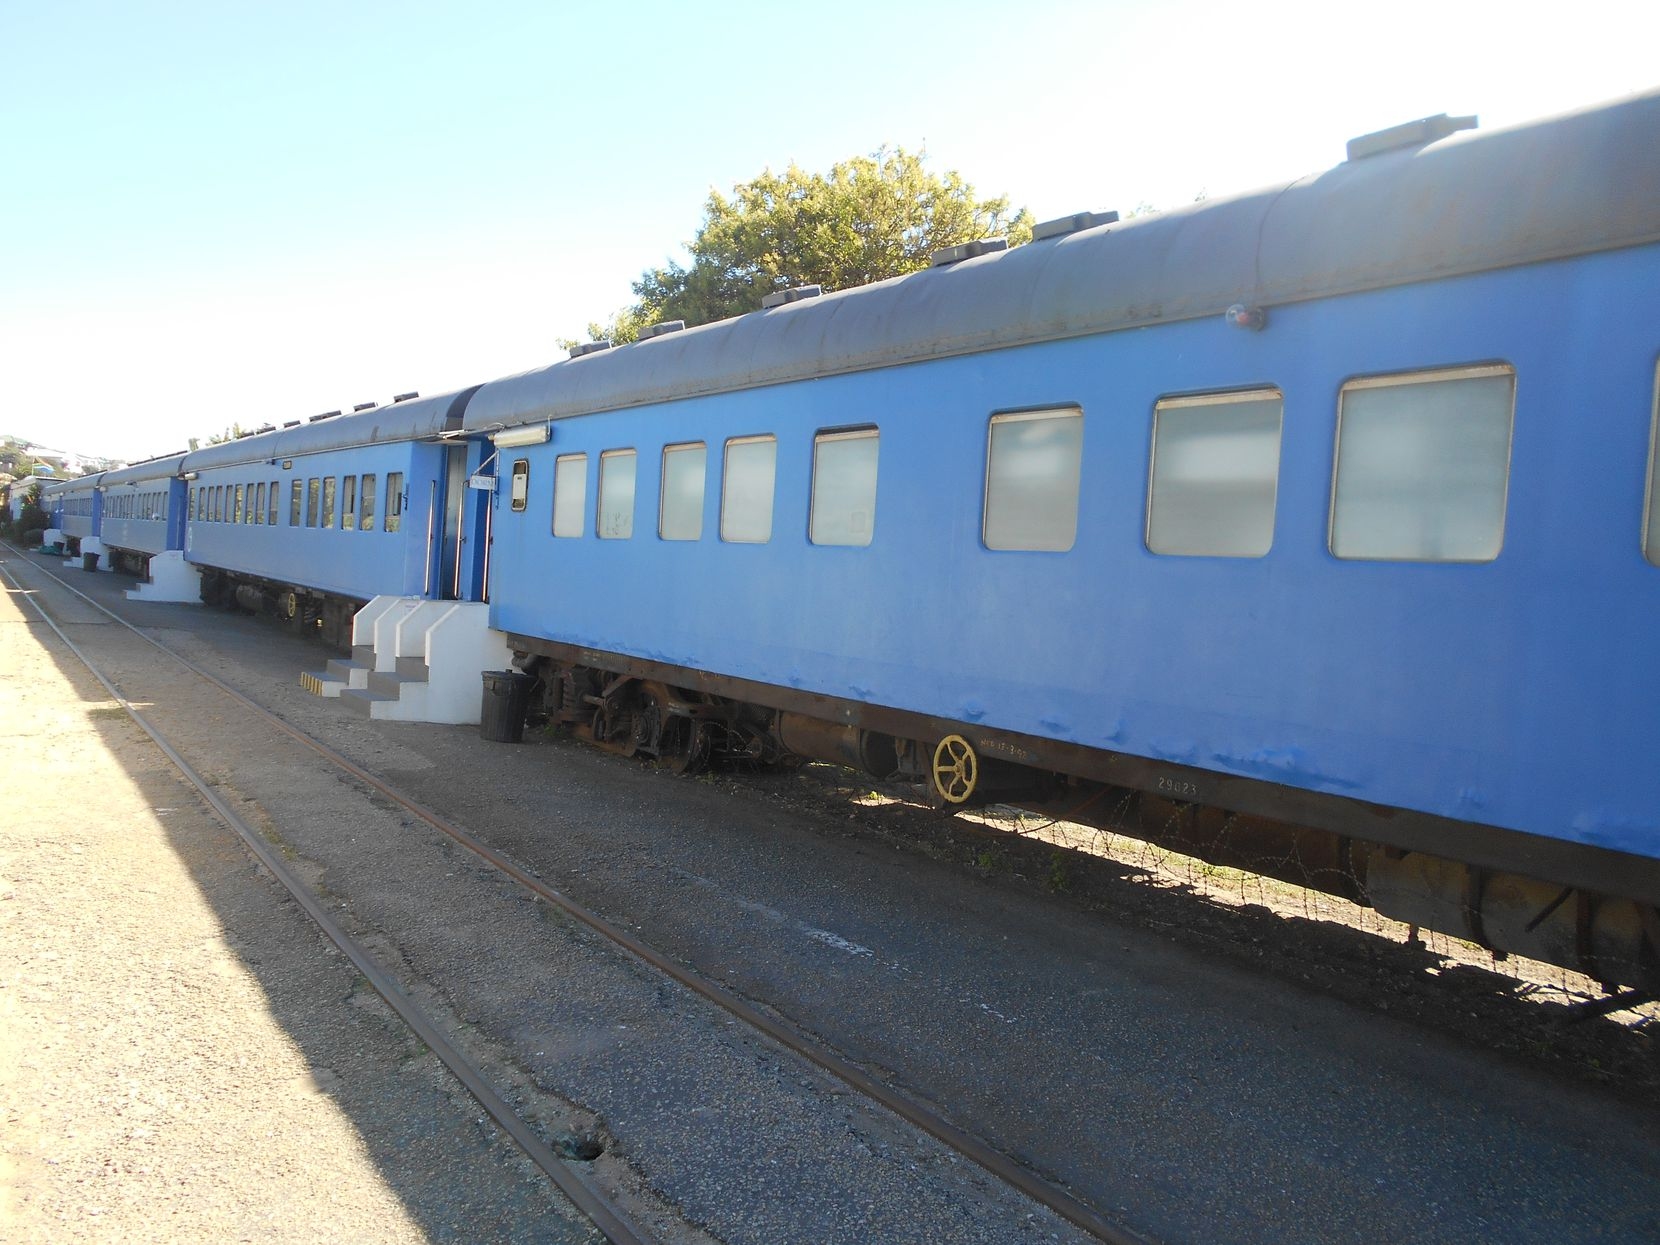 The Santos Express Train in Mossel Bay is a hostel in a former passenger train, with each guest having a private berth.